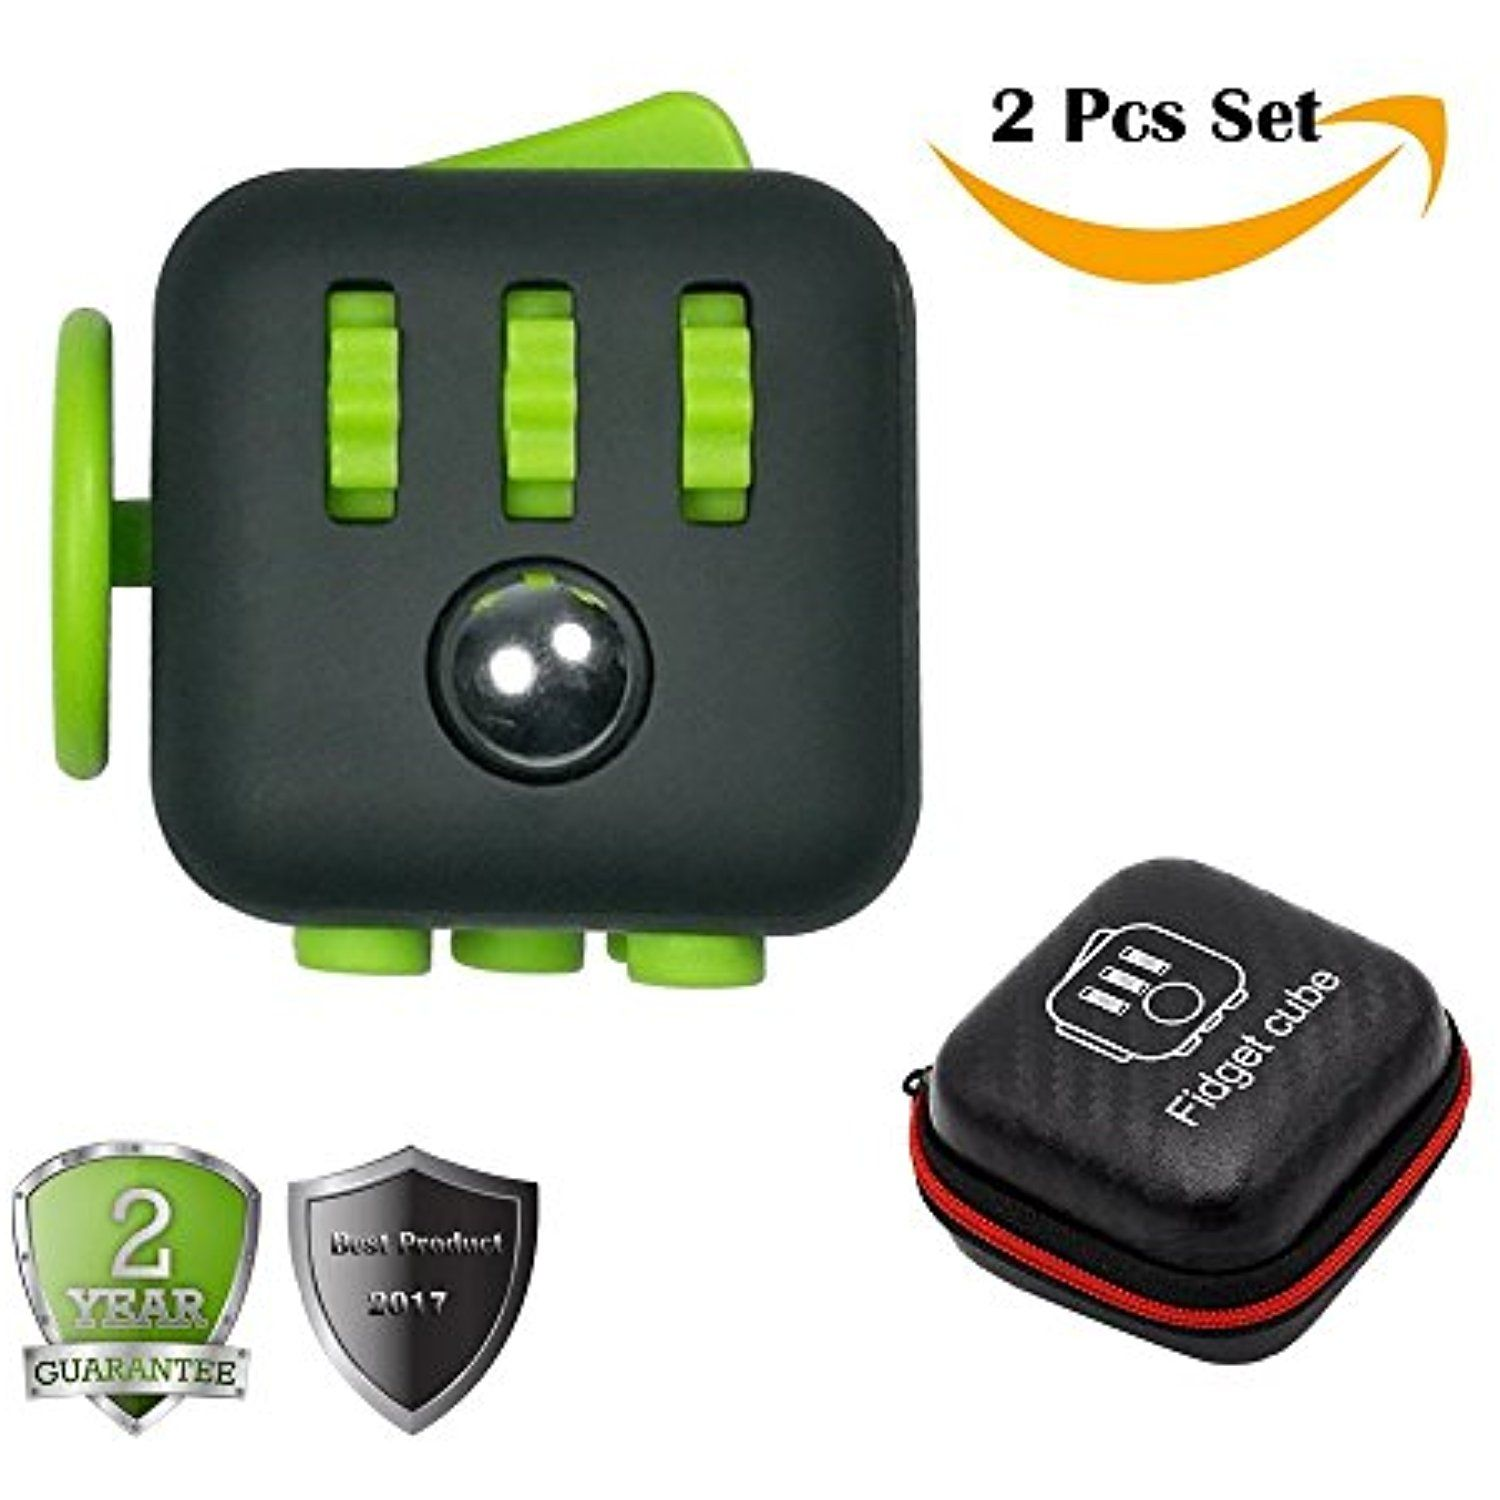 2 Pcs Fidget Cube For Stress And Anxiety With Protective